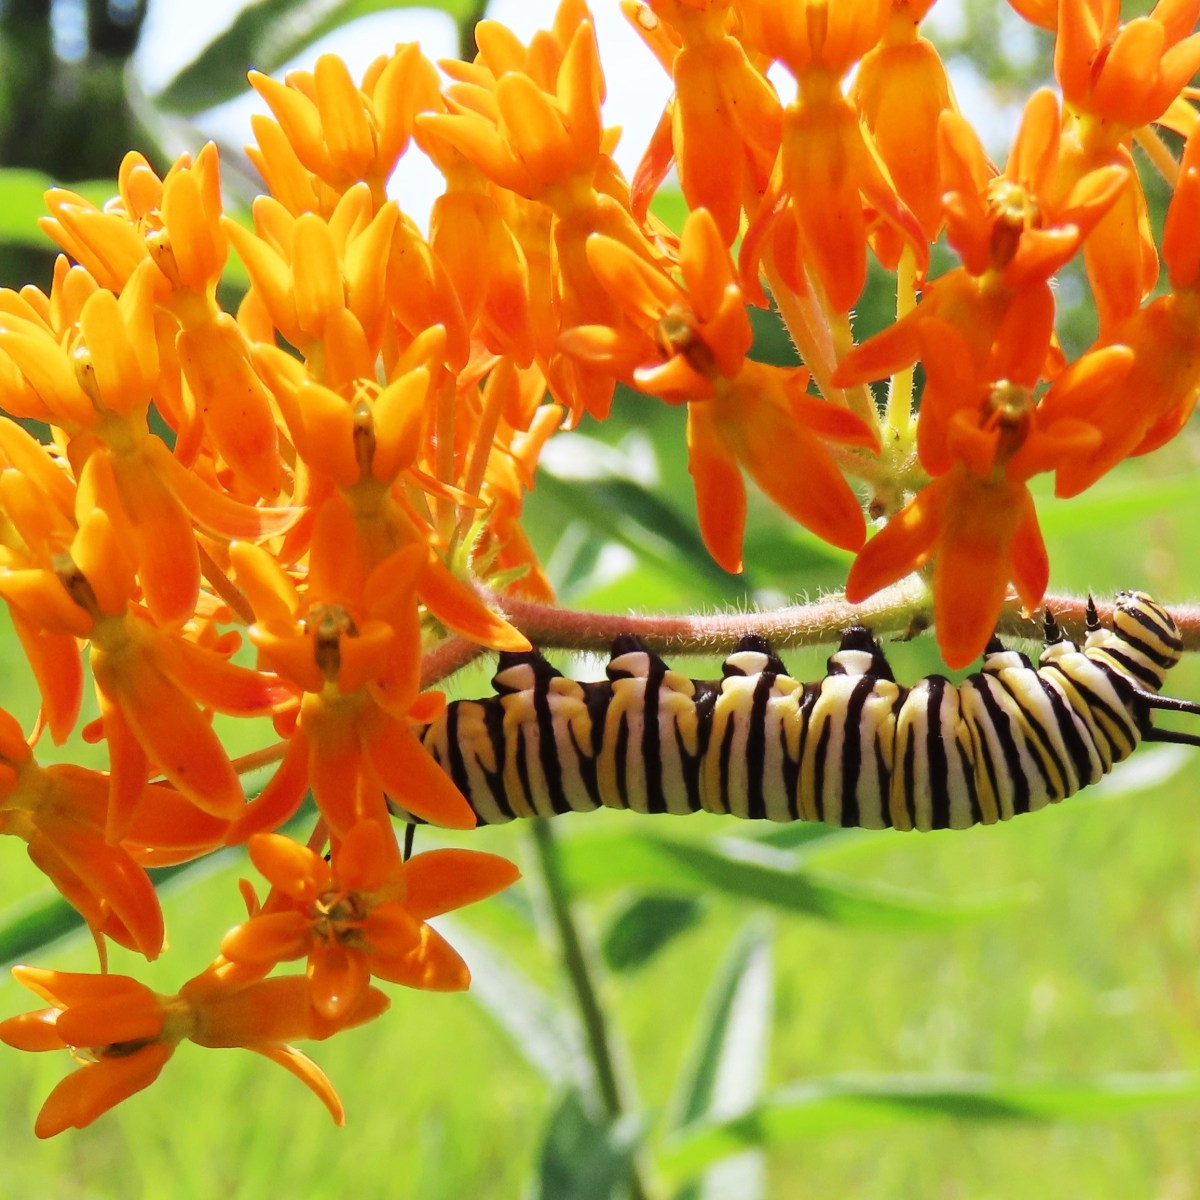 A monarch caterpillar crawls along butterfly weed blossoms